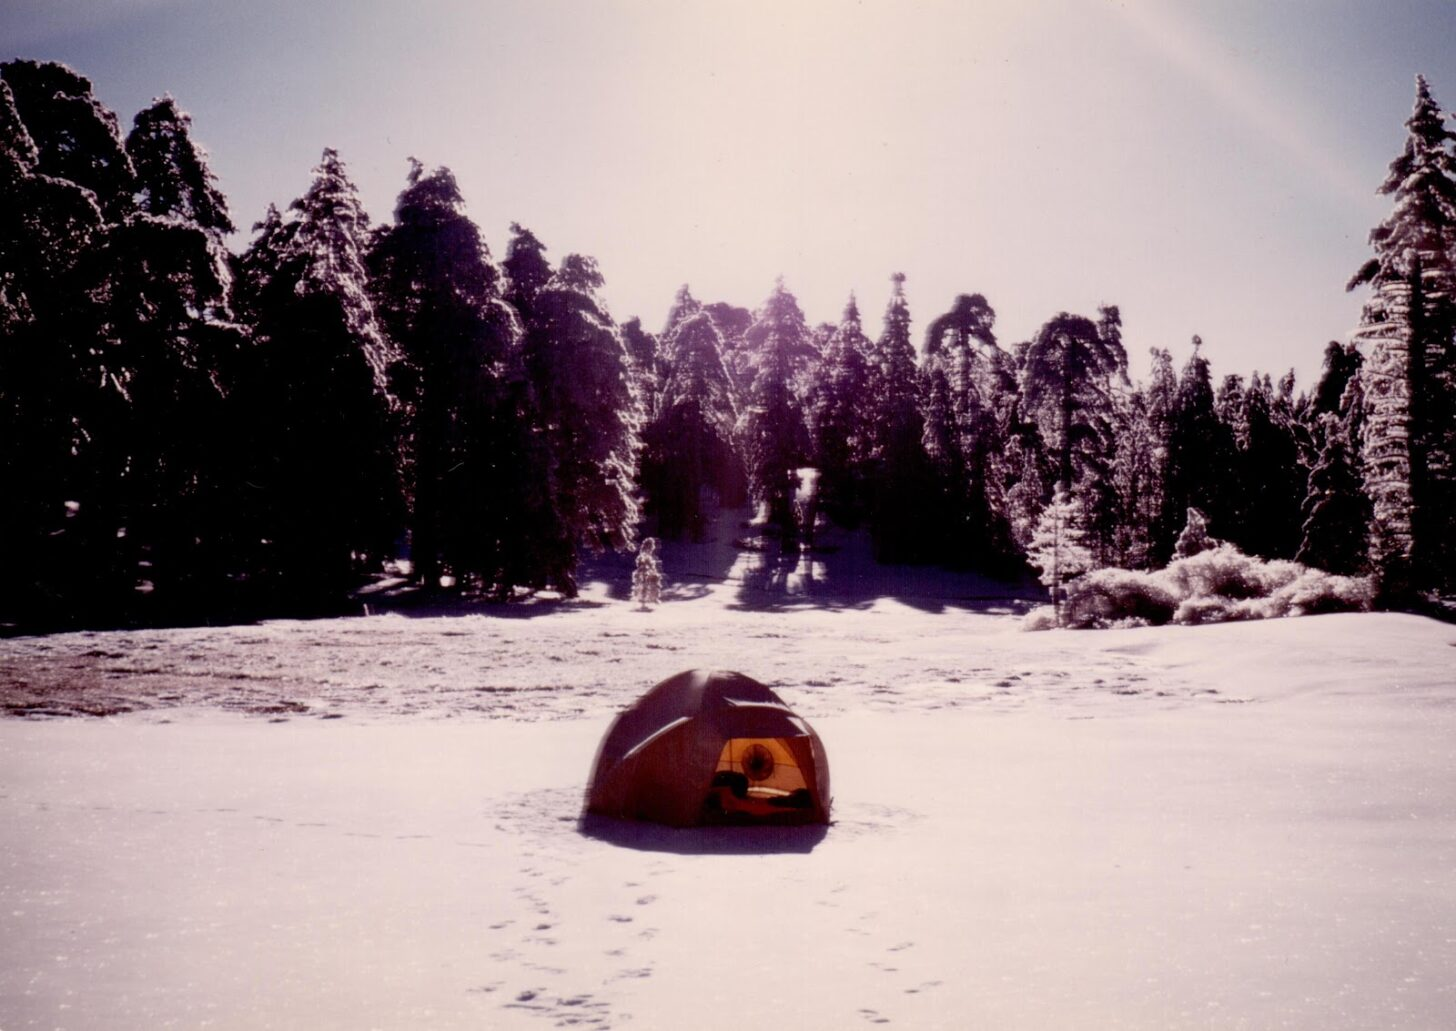 an old geodesic dome tent on a snow field